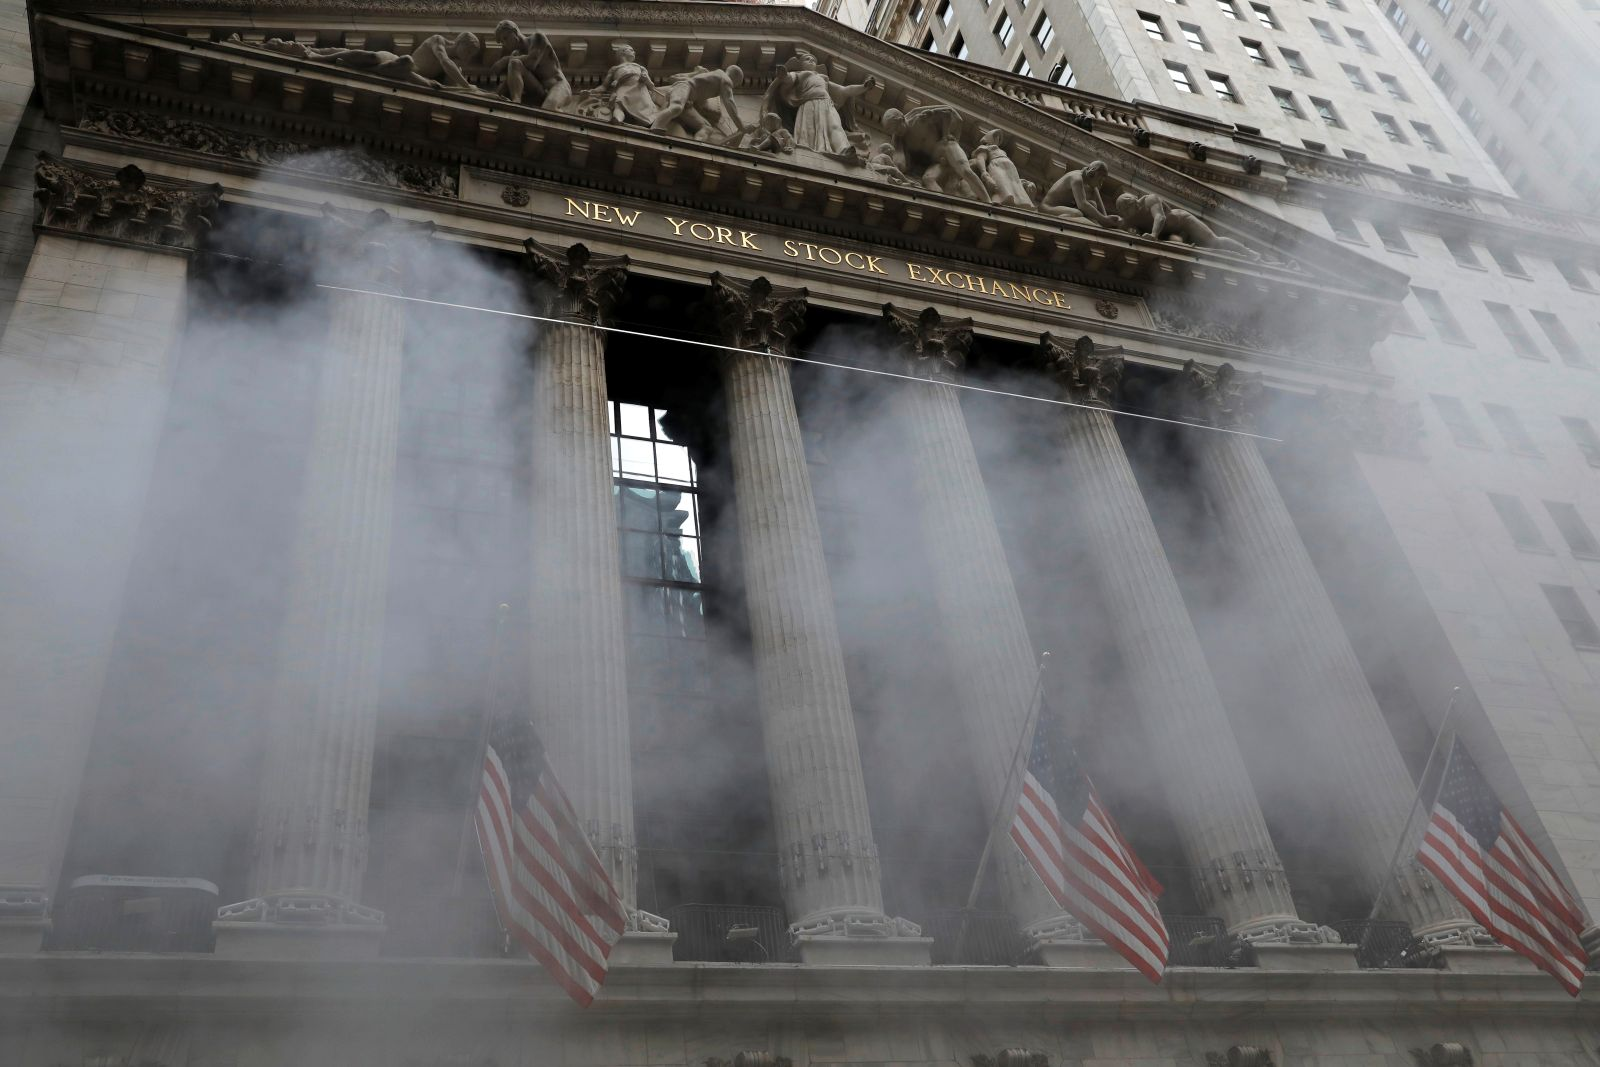 Steam rises in front of the New York Stock Exchange (NYSE) in Manhattan, New York City